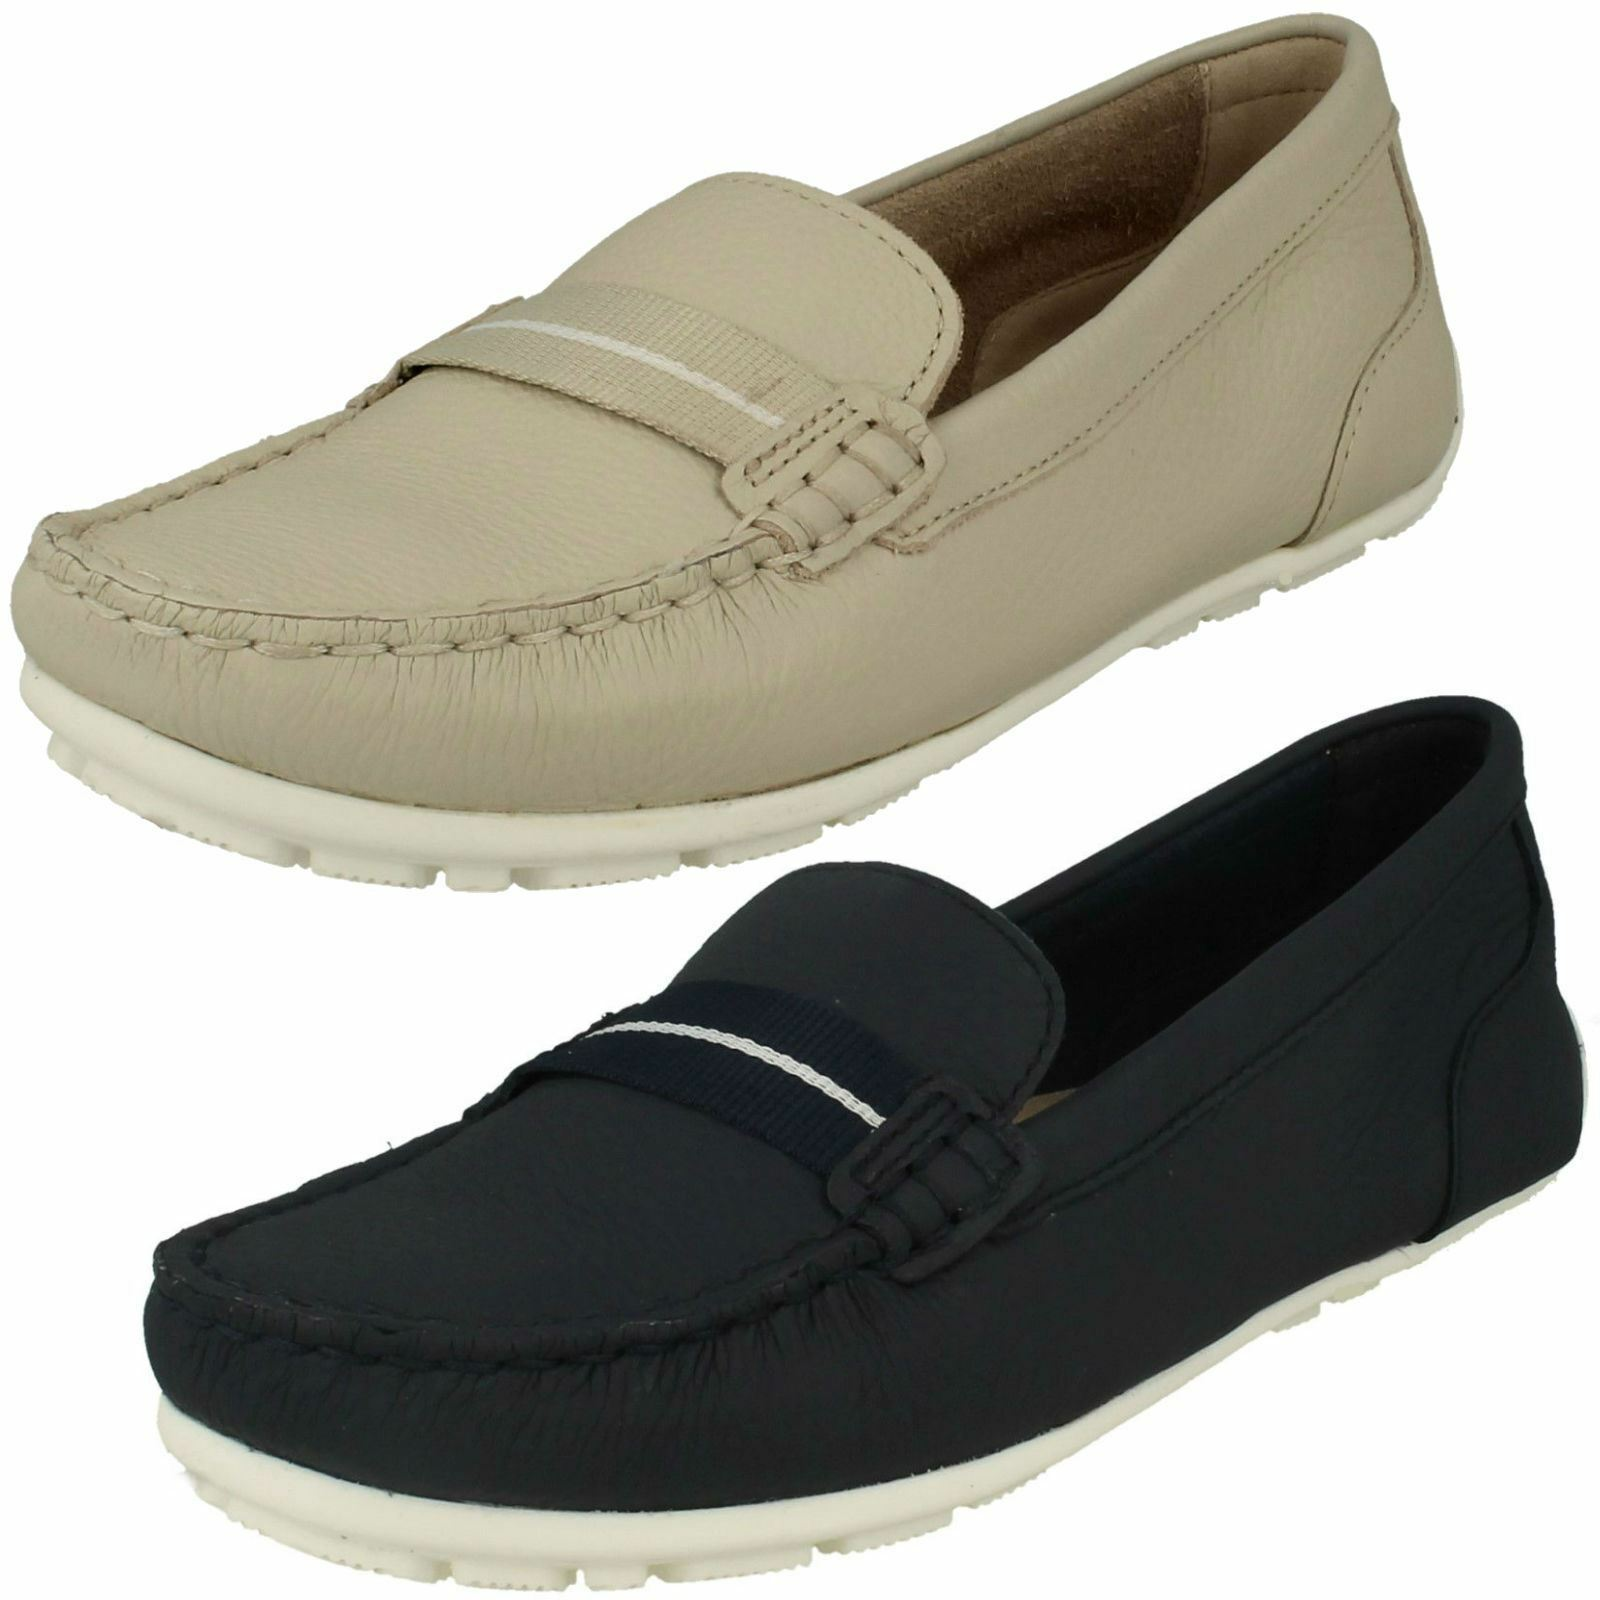 CLARKS LADIES LEATHER SLIP ON CASUAL MOCCASIN SOFT COMFORTABLE chaussures DAMEO VINE